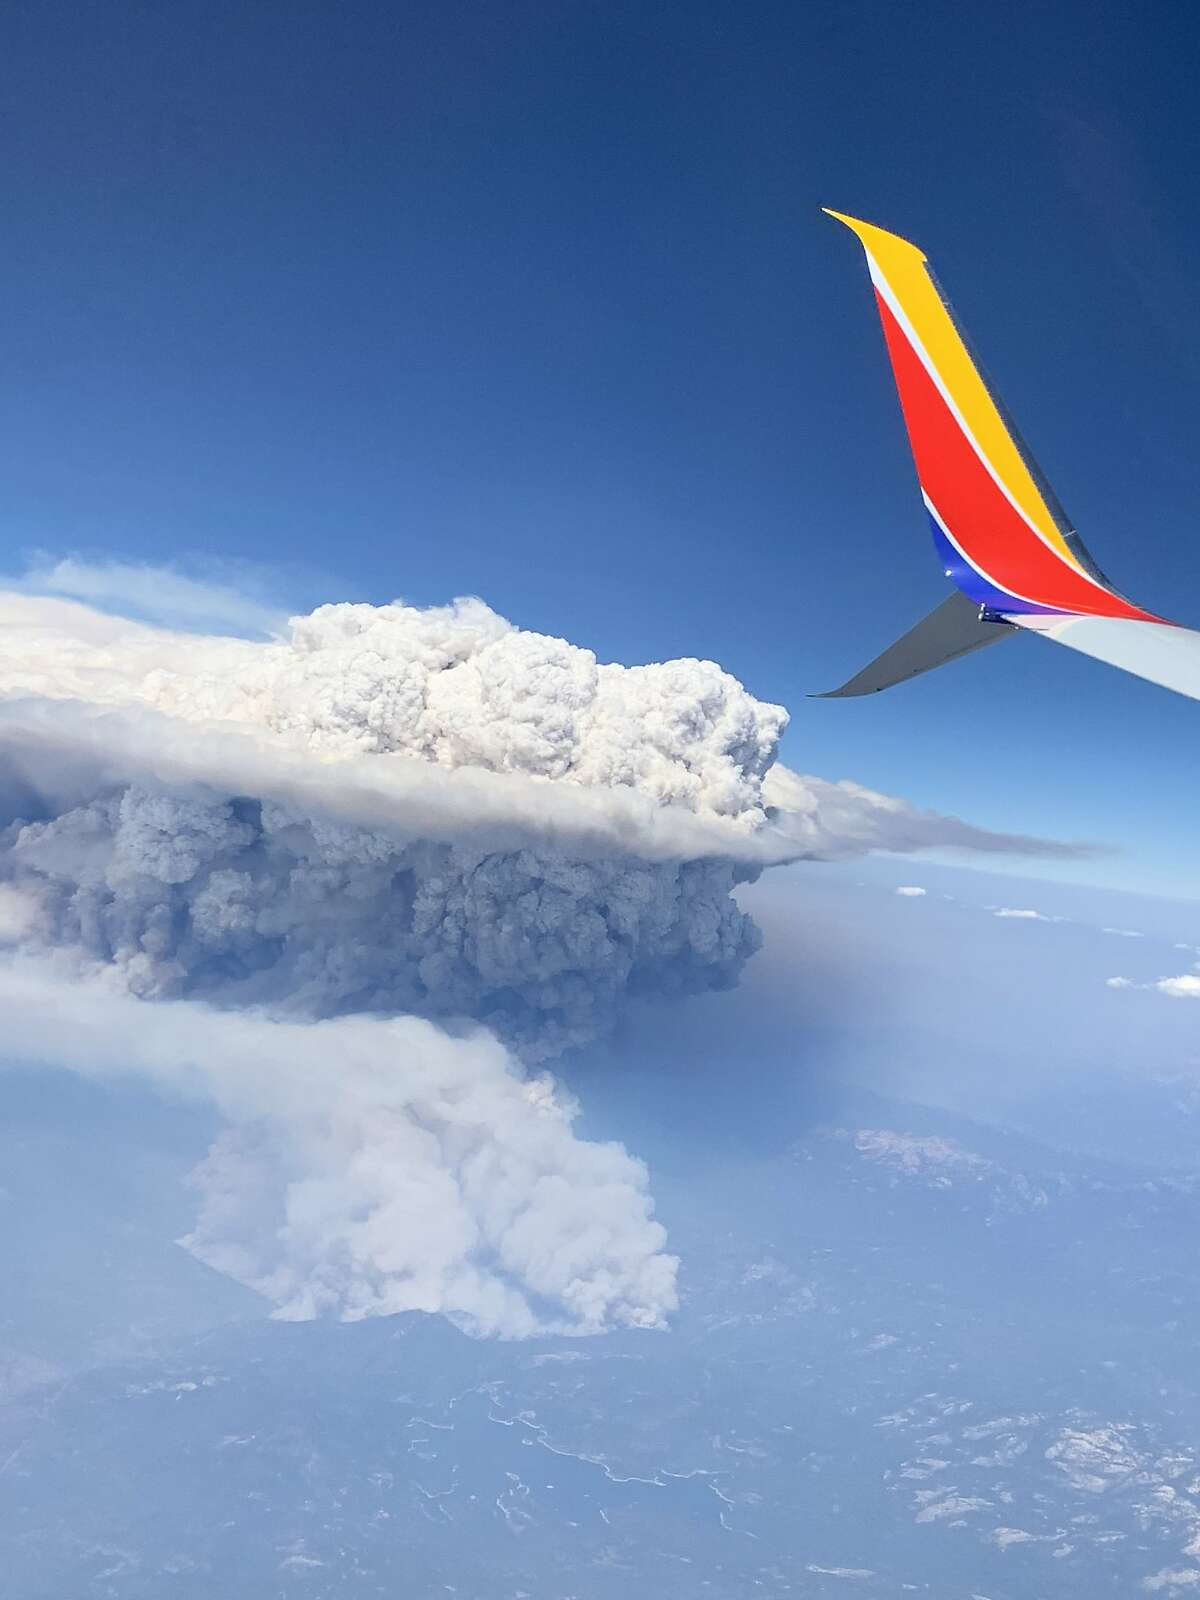 A cumulonimbus flammagenitus cloud also known as a pyrocumulonimbus cloud from the Creek Fire in the the Sierra National Forest as seen on September 5, 2020. Passenger Thalia Dockery took these photos on a Southwest Airlines, from San Jose to Las Vegas on September 5, 2020.